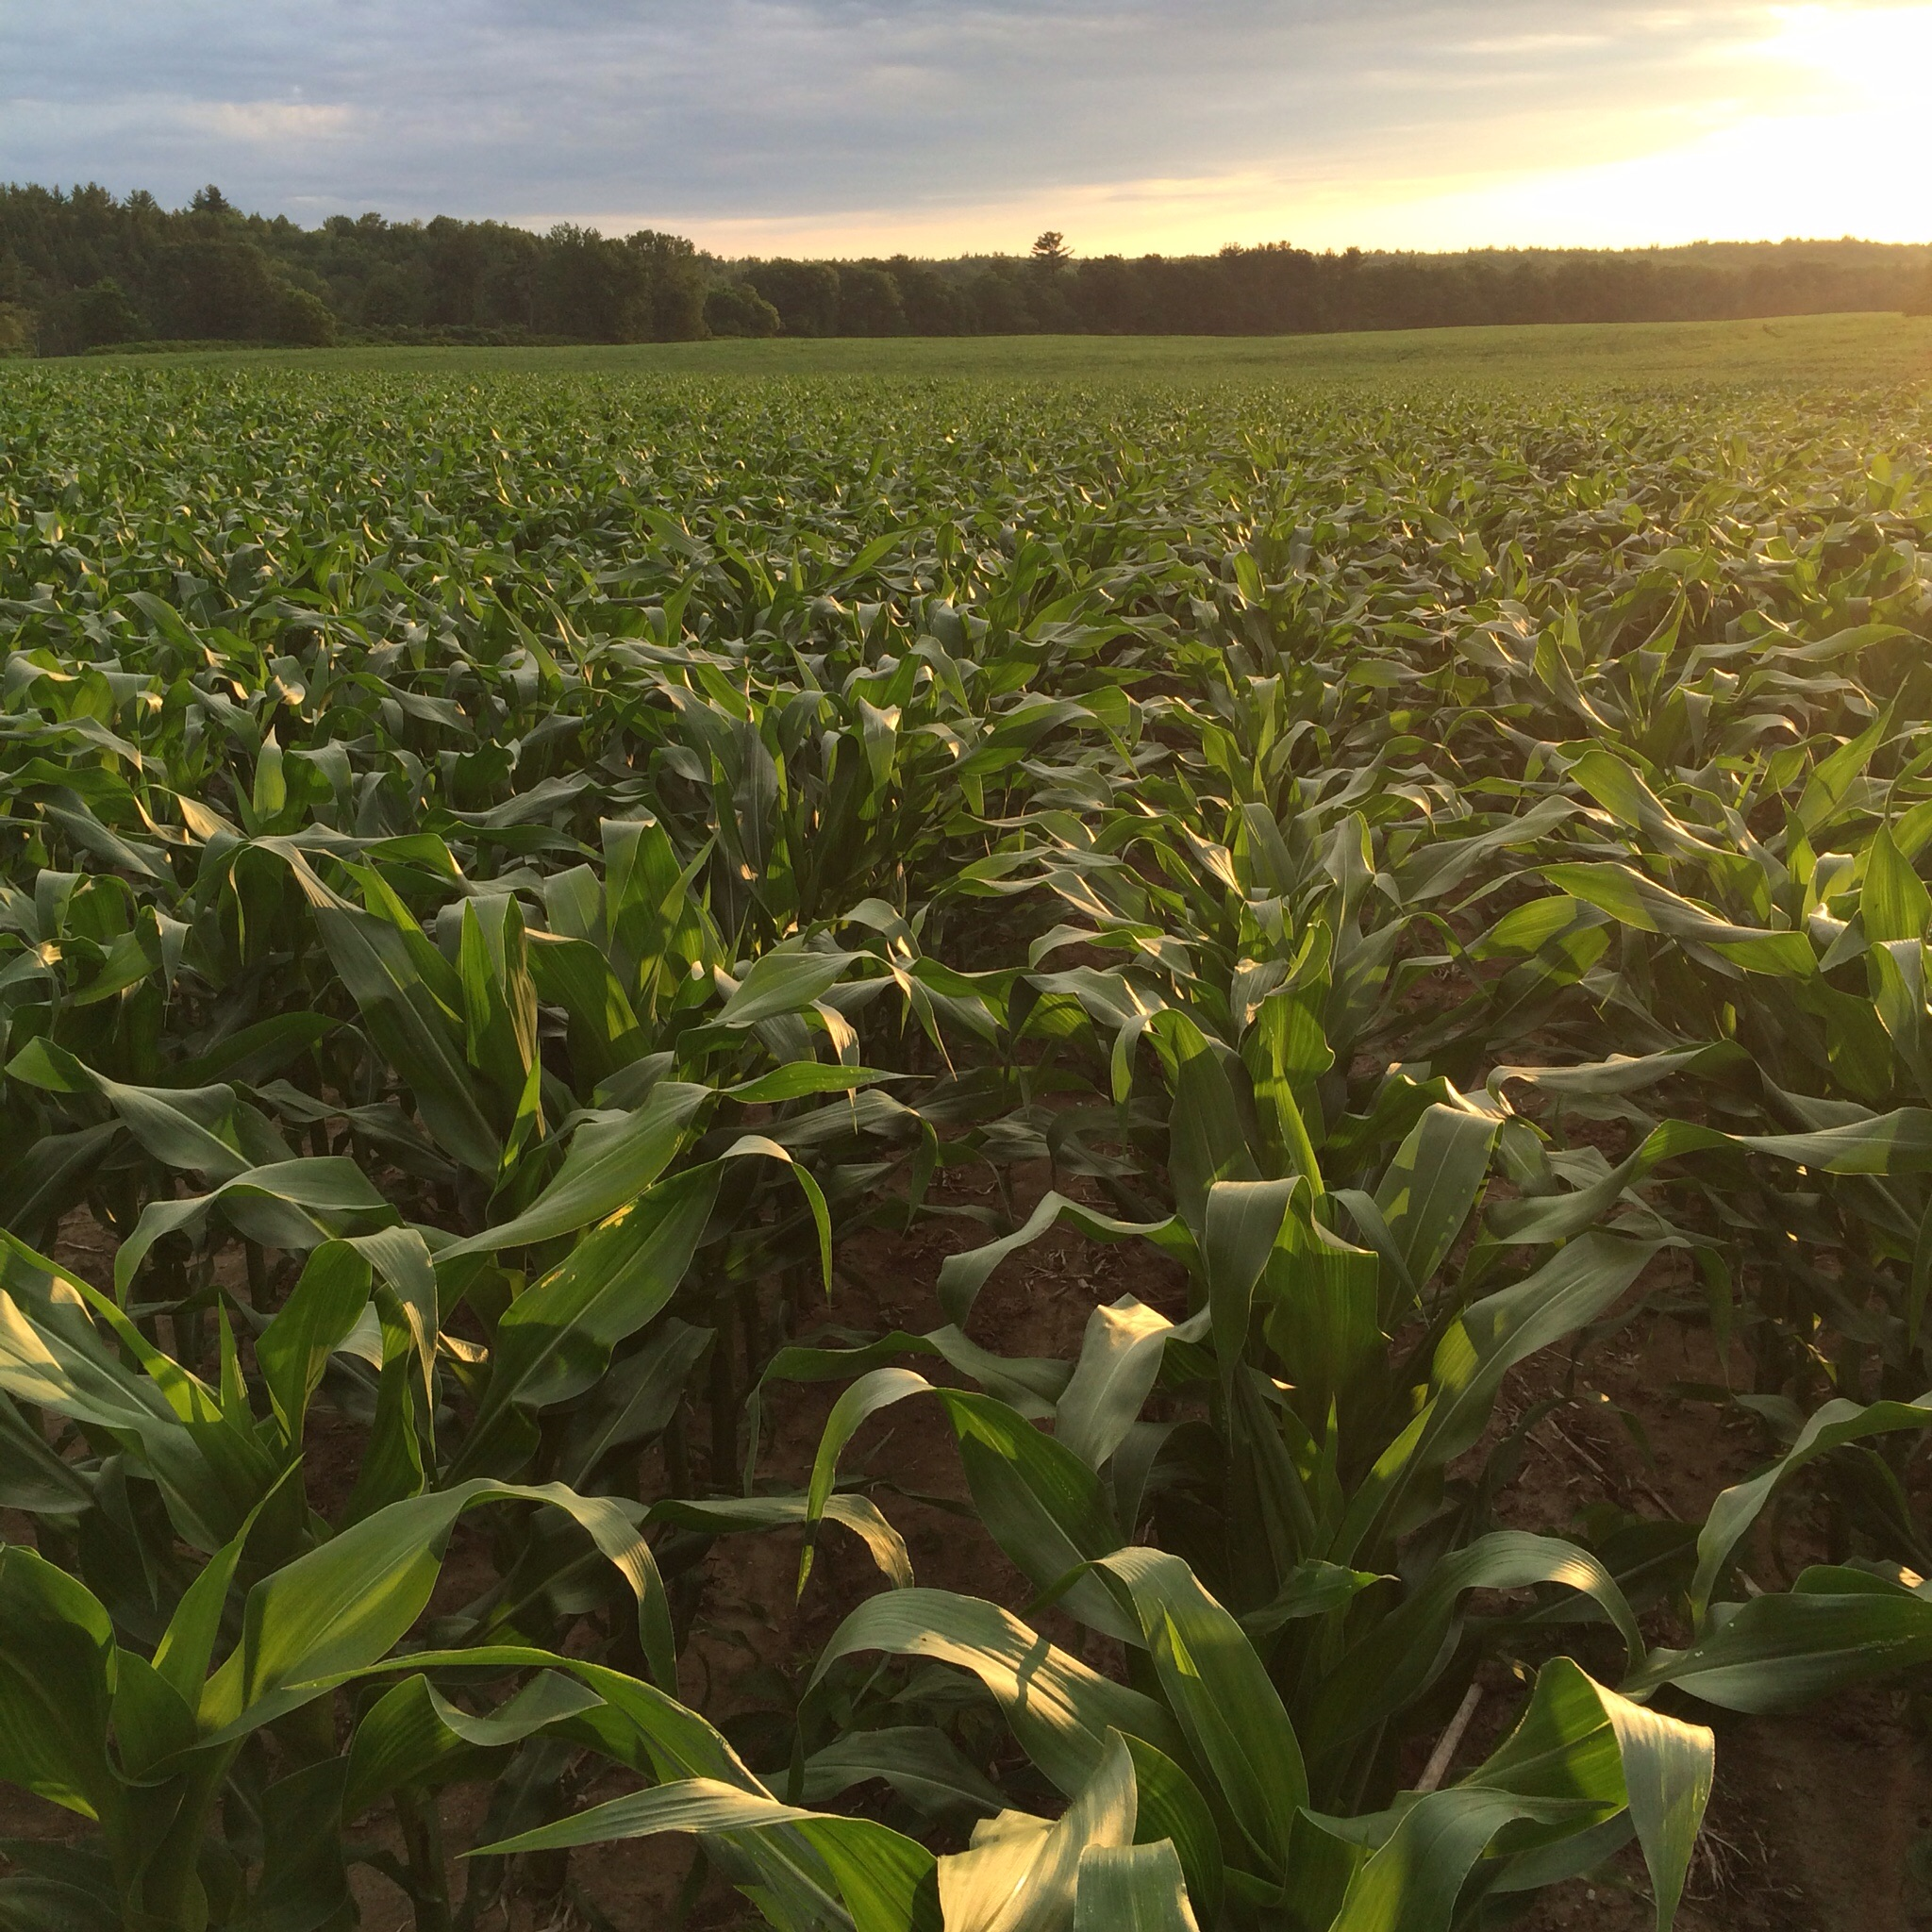 Sunset on a giant field of corn near the Kennebec.